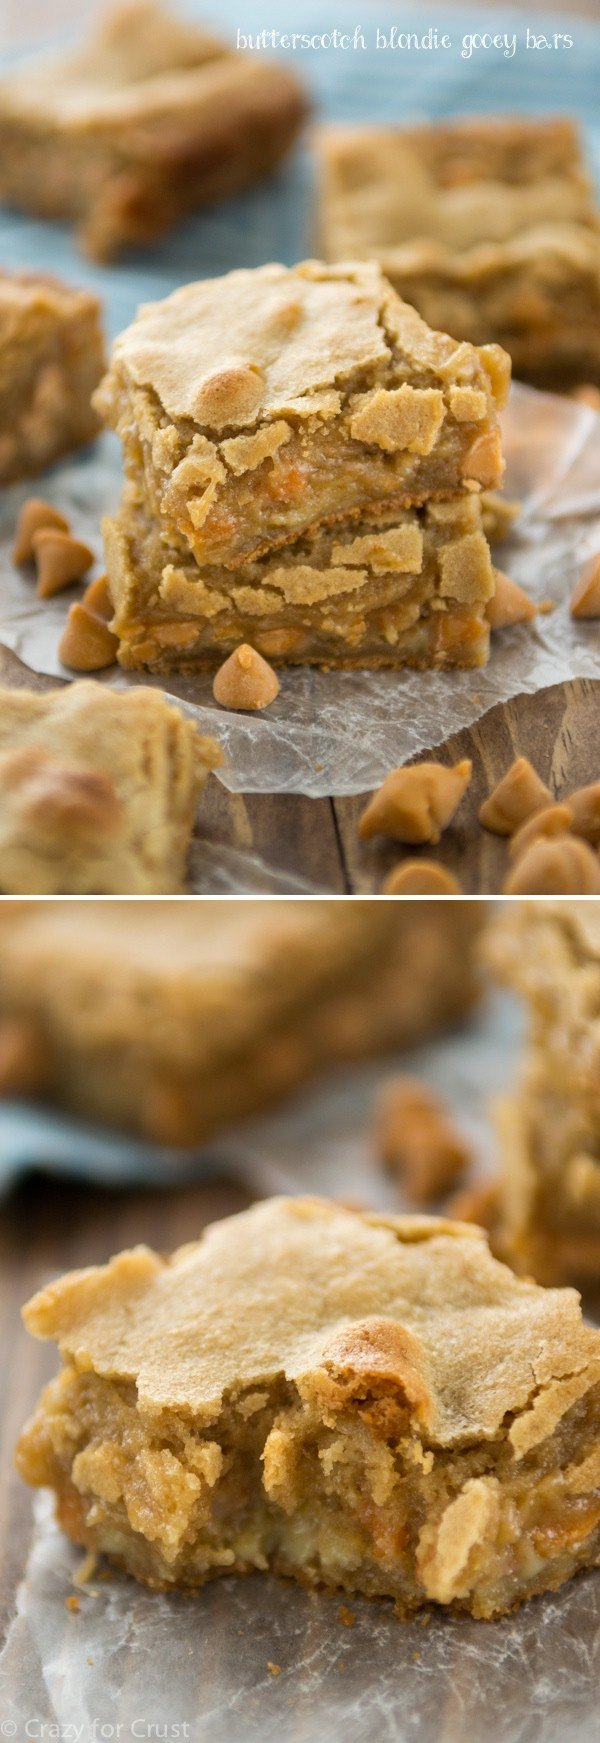 Butterscotch Blondie Gooey Bars - like a blondie but in gooey bar form, with butterscotch chips!